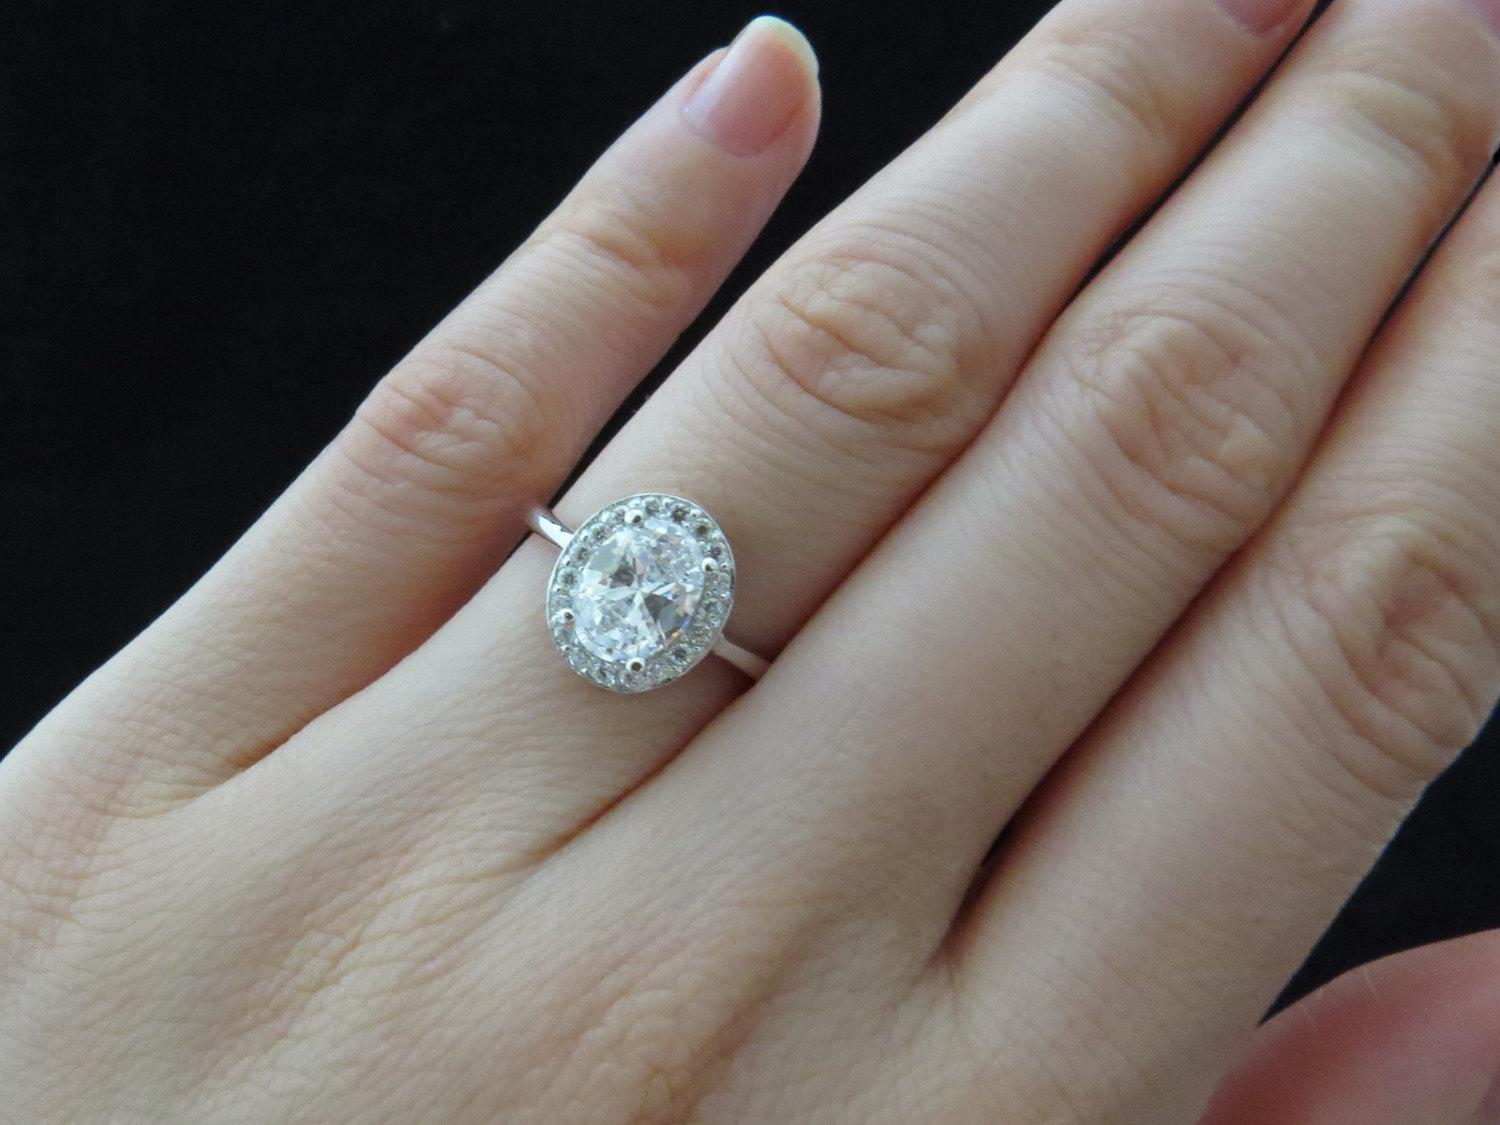 5 Reasons To Propose With An Antique Engagement Ring